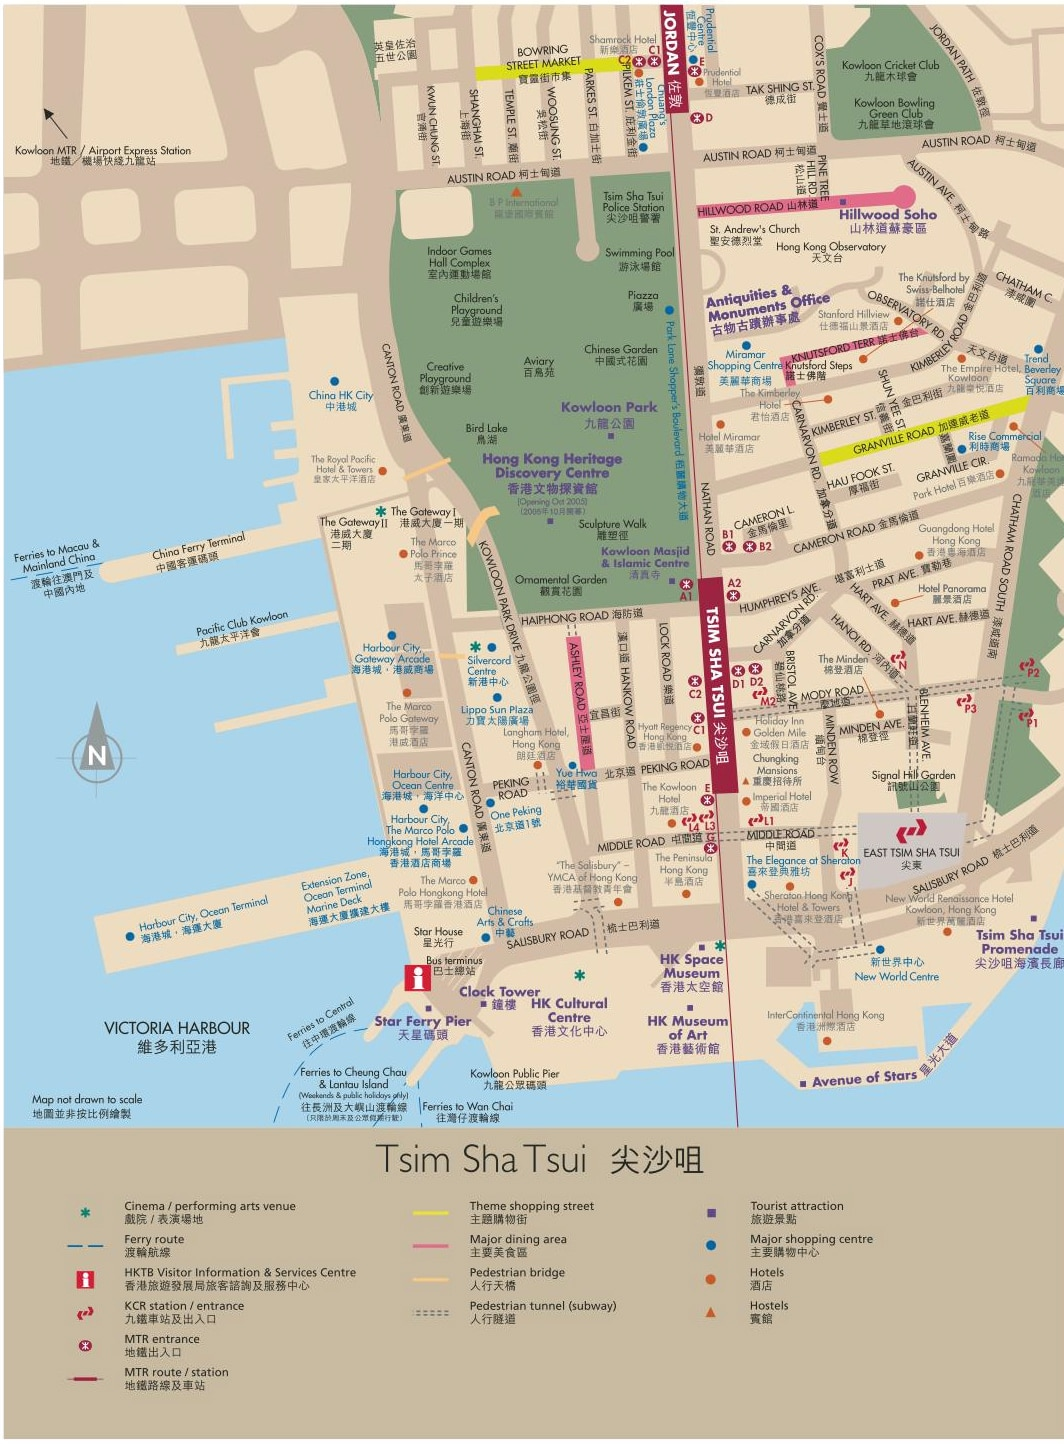 Kowloon travel-tourist maps | China Mike on chicago city street map, denver city street map, miami city street map, western street map, philadelphia city street map, beacon hill street map, wan chai street map, taipei city street map, cape town city street map, city of flint street map, boston city street map, london city street map, shanghai city street map, seattle city street map, jerusalem city street map, kiev city street map, kathmandu city street map, birmingham city street map, austin city street map, houston city street map,